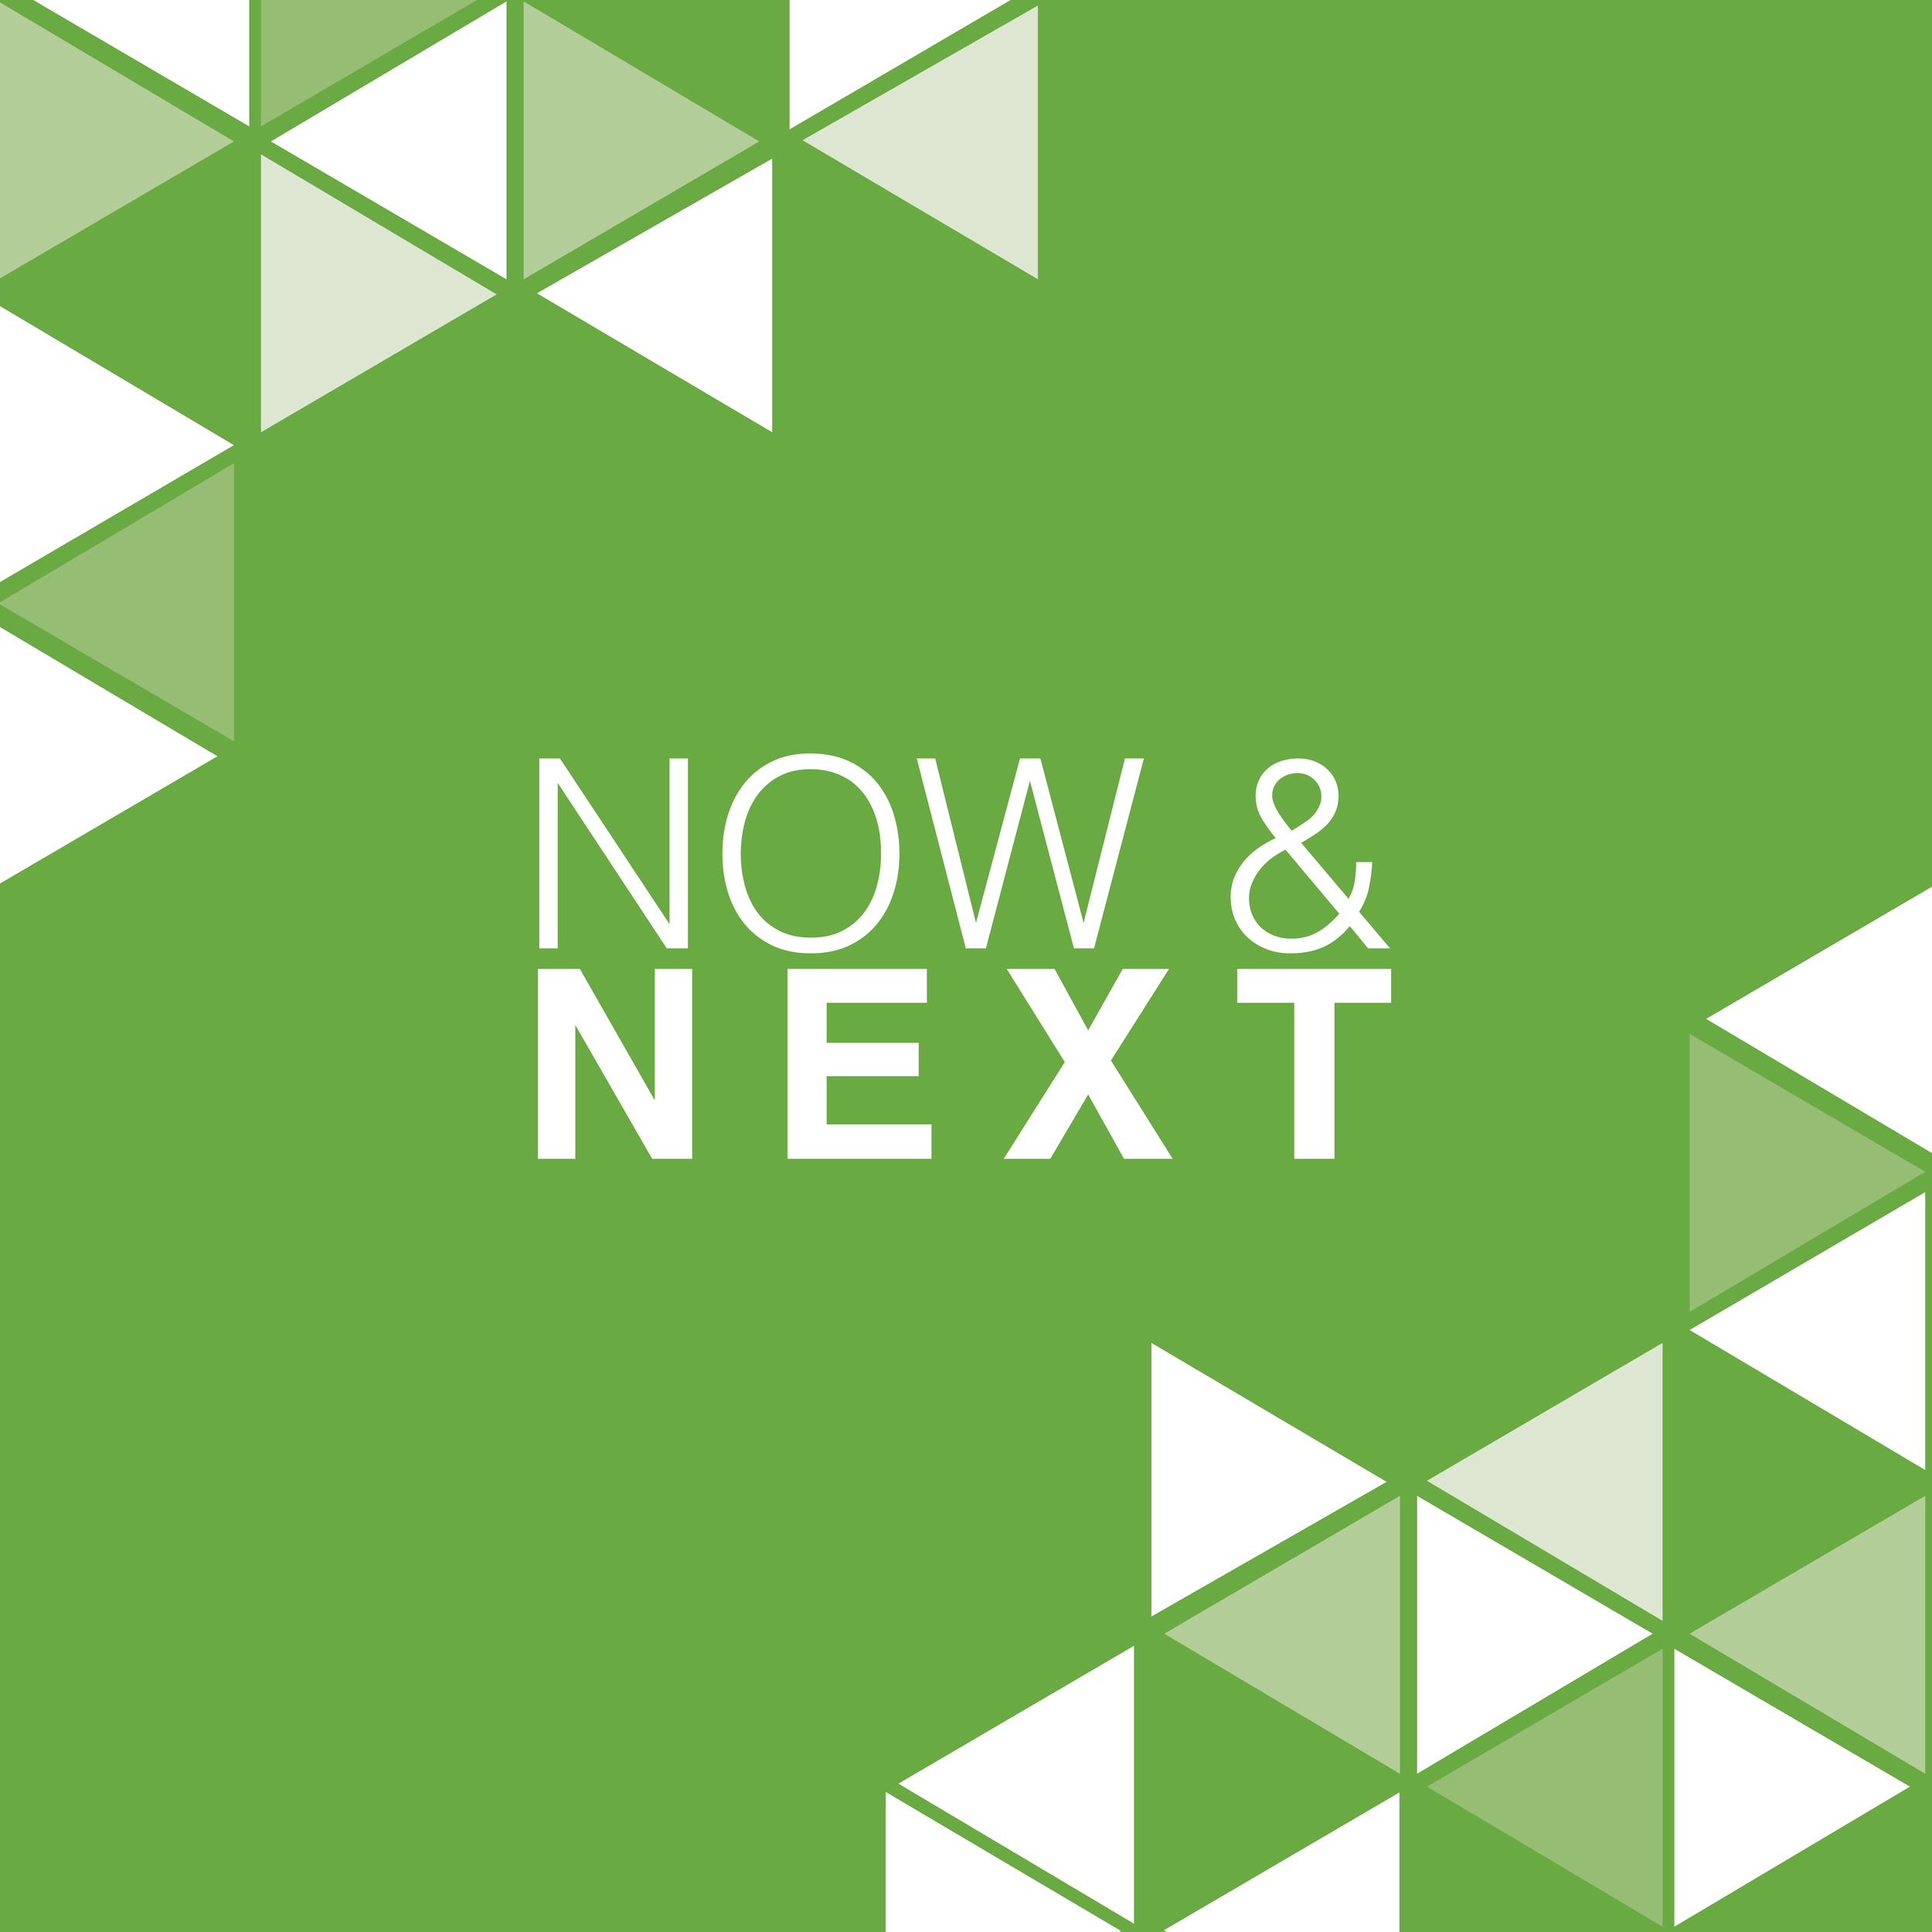 Now & Next 612x612.png